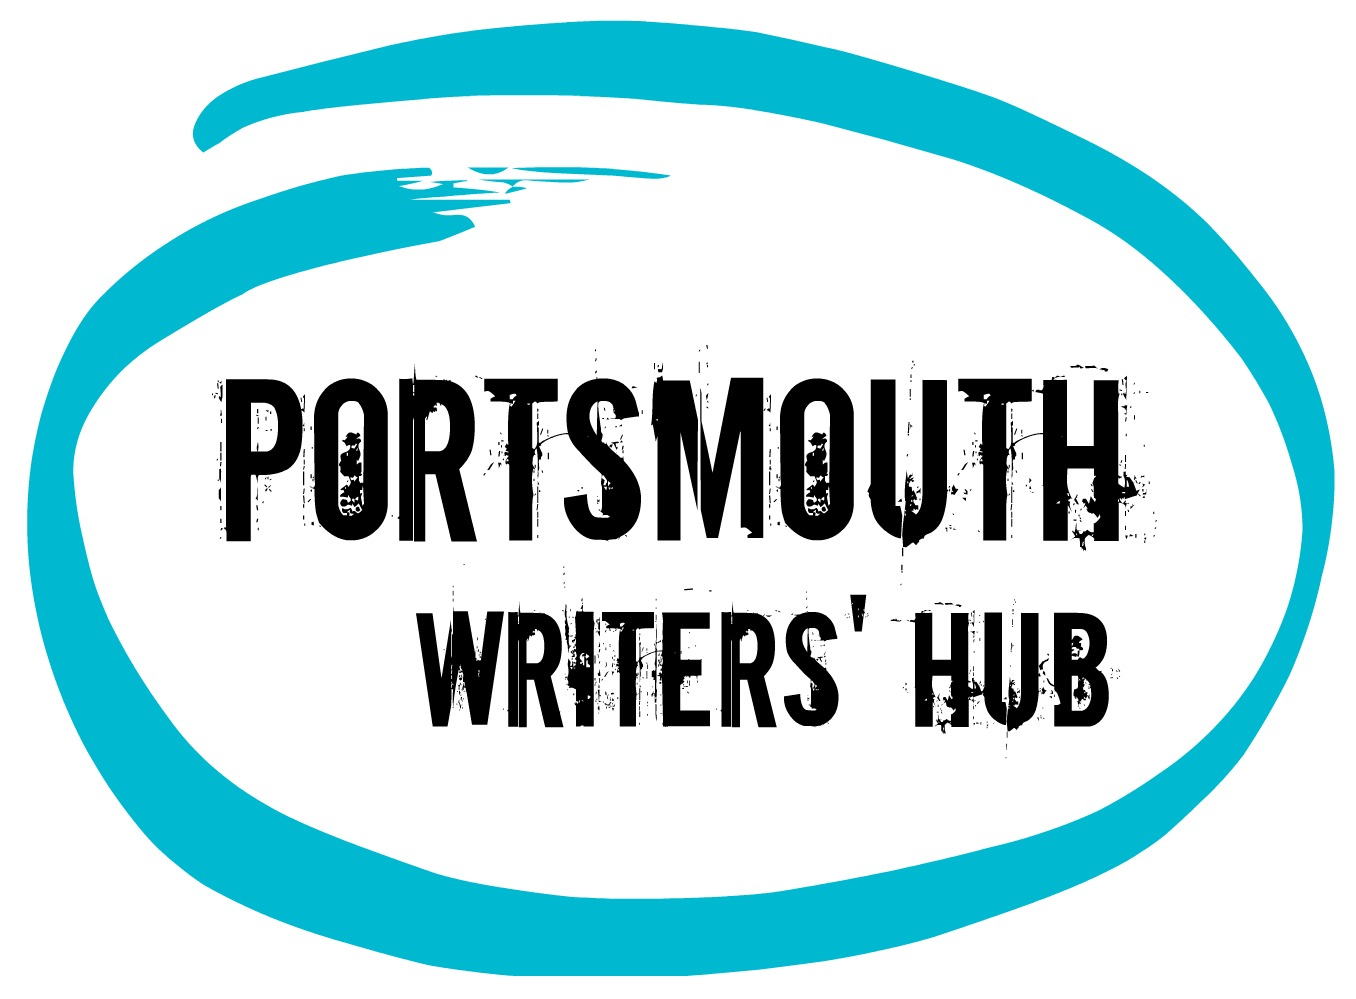 uk writers hub